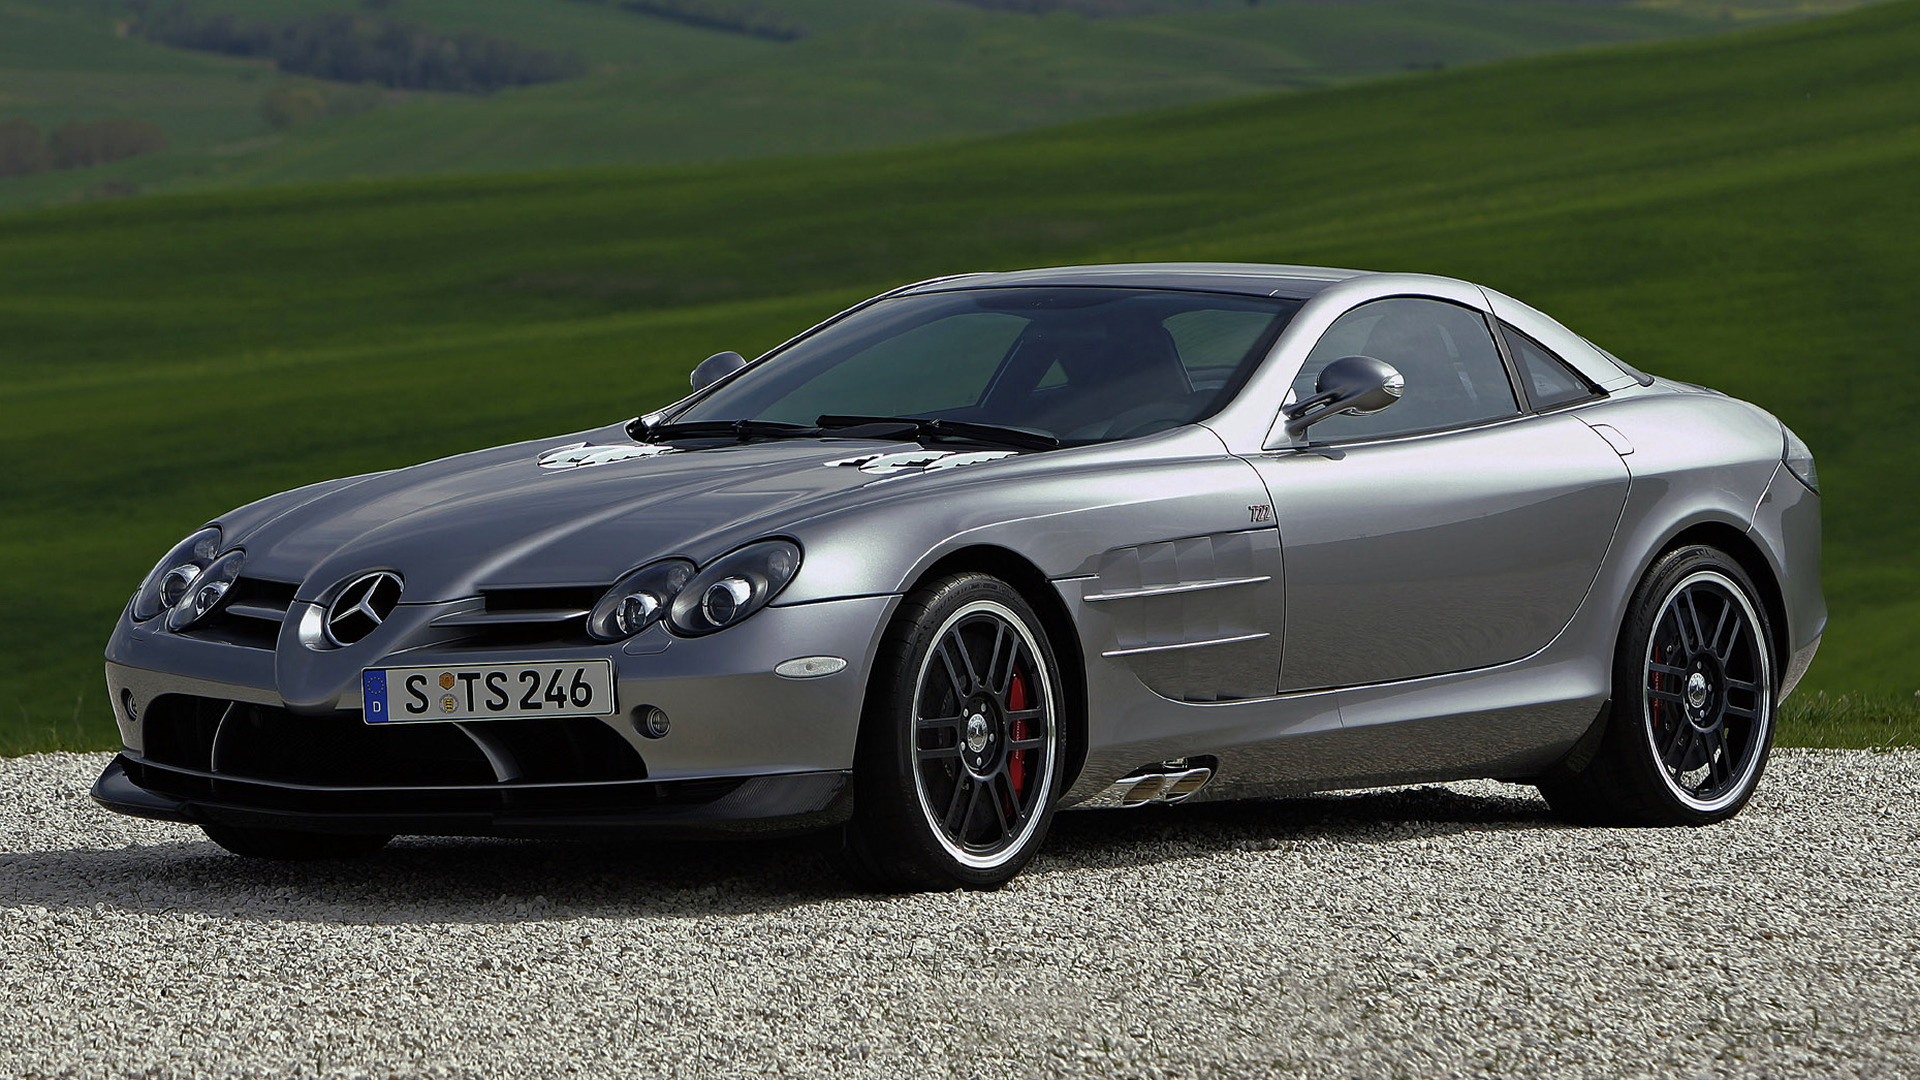 mercedes benz slr mclaren wallpapers images photos pictures backgrounds. Black Bedroom Furniture Sets. Home Design Ideas